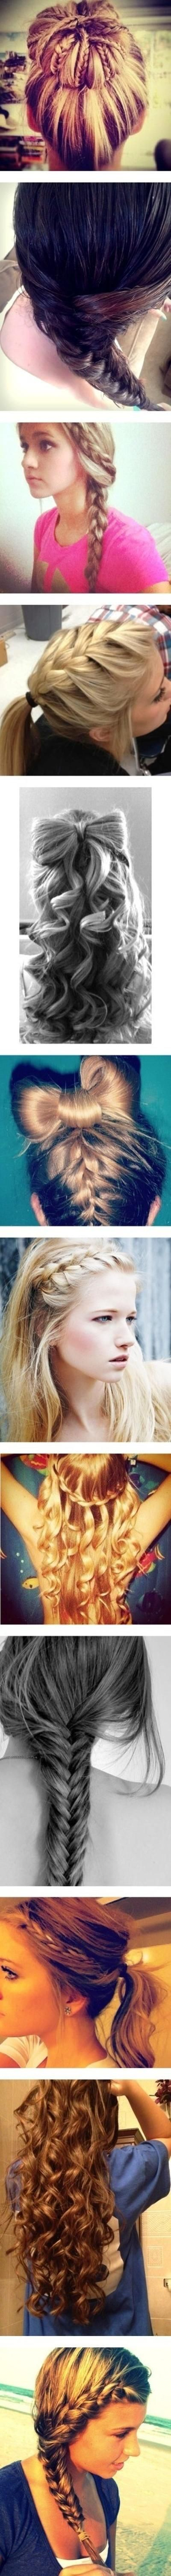 best hair design ideas images on pinterest braids chignons and